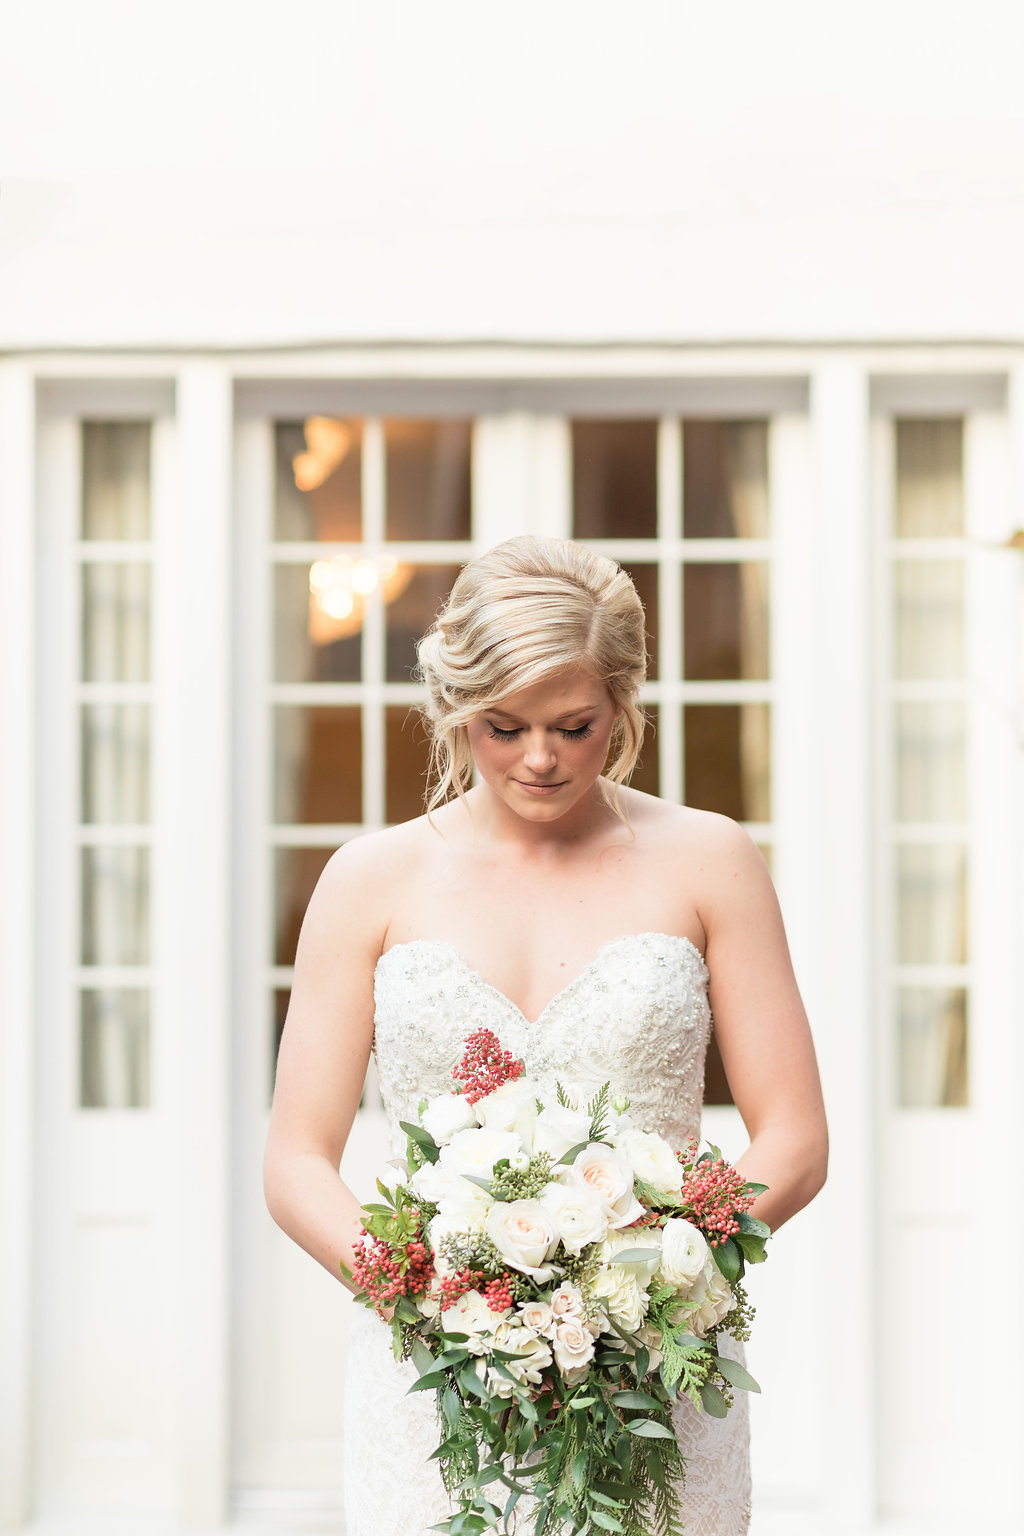 New Orleans Wedding - Red and White Wedding — The Overwhelmed Bride Wedding Blog